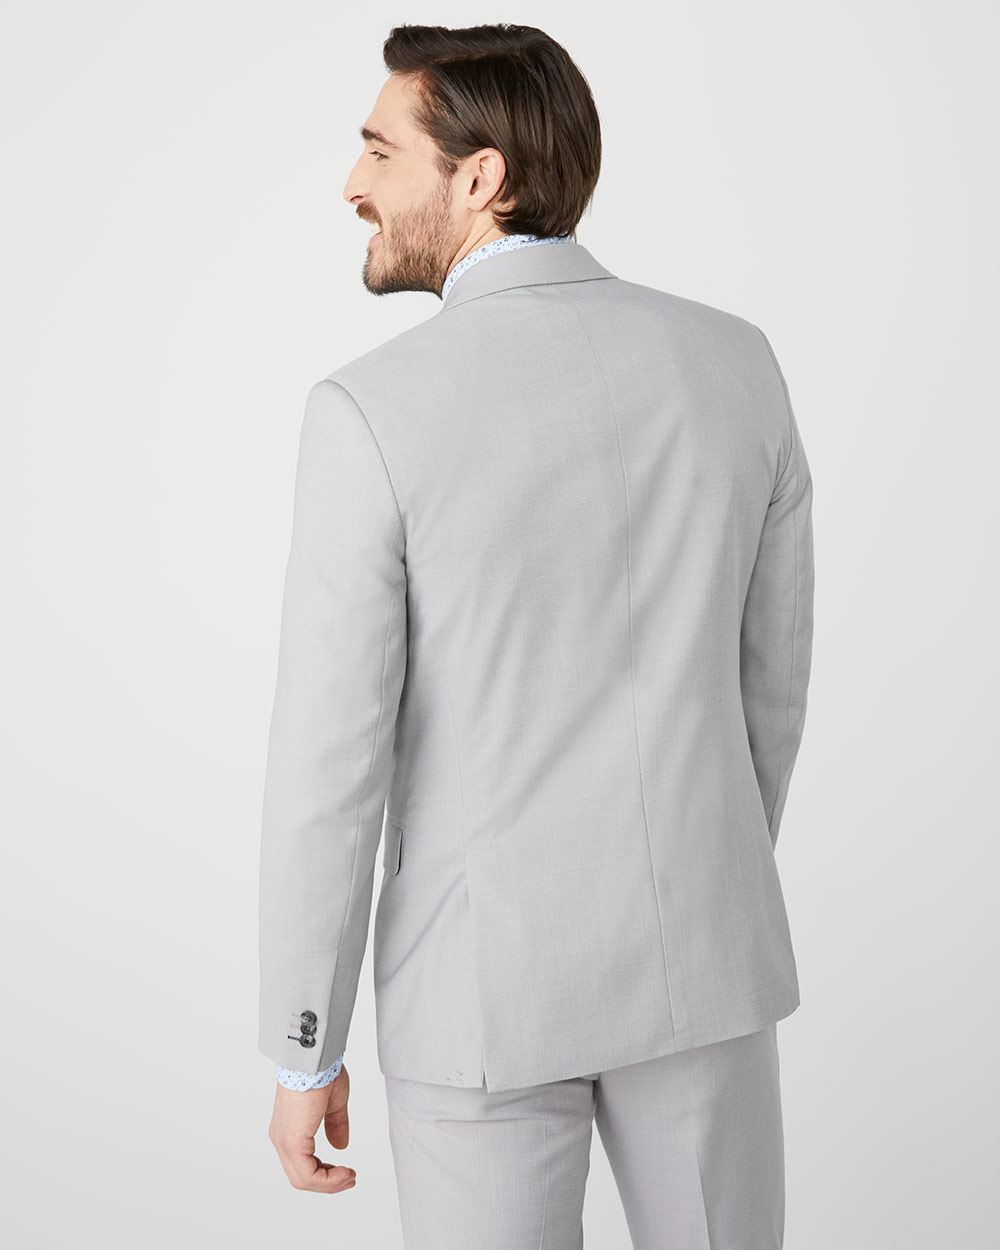 Essential Tailored Fit light heather Grey suit Blazer